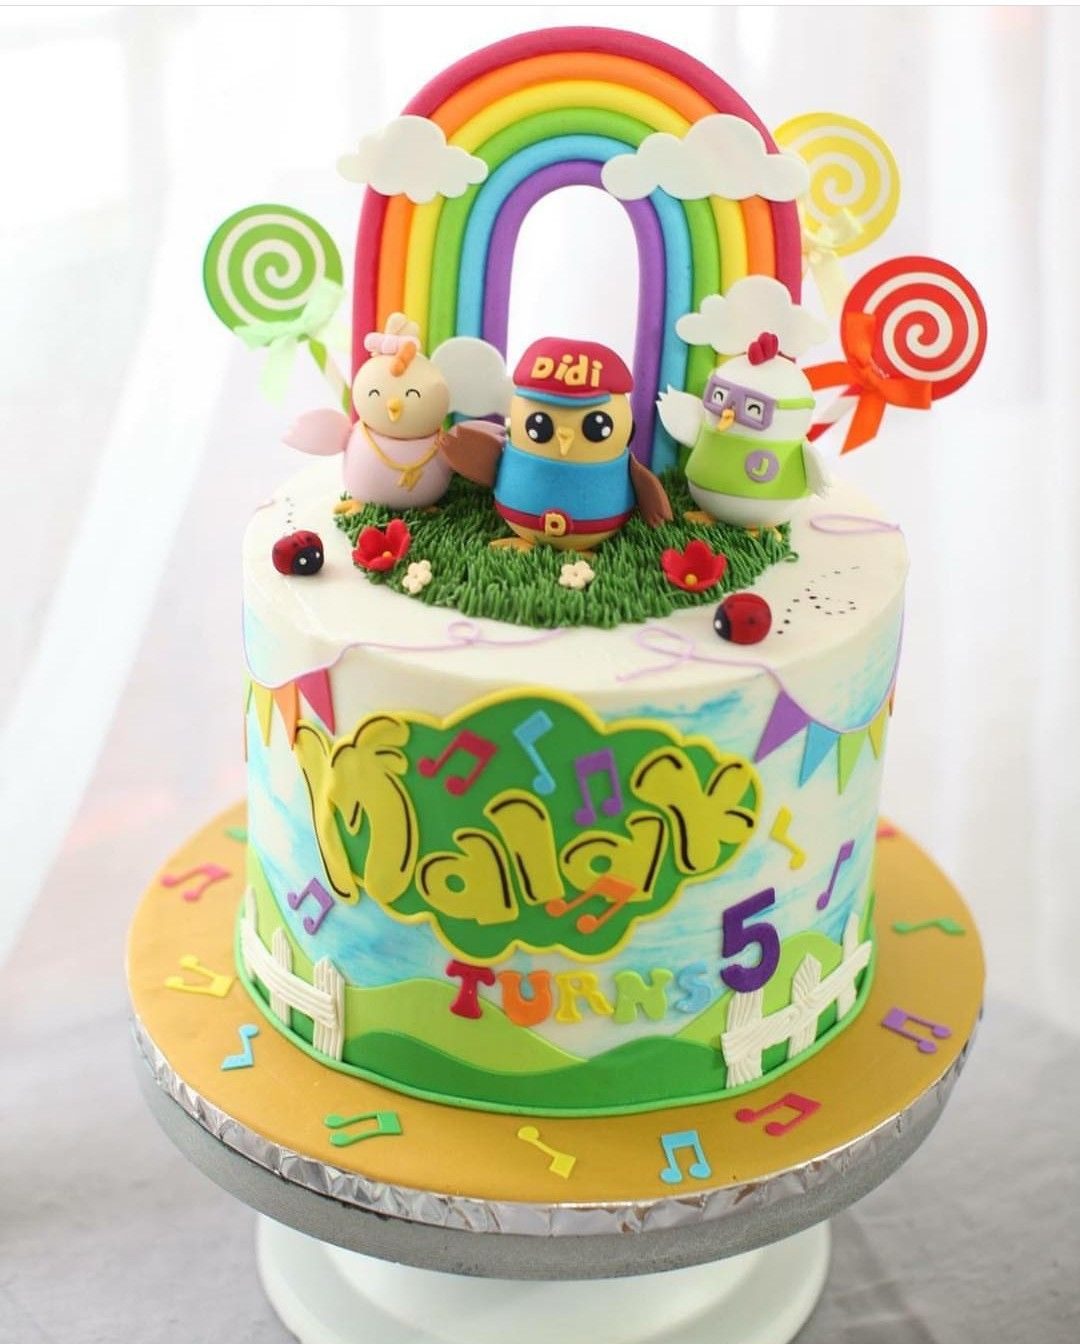 If Only I Could Make A Cake Like This Want More Ideas For Your Kid S Birthday Party Follow Our Board Didi And Friends Friends Theme Cake Kids Birthday Party